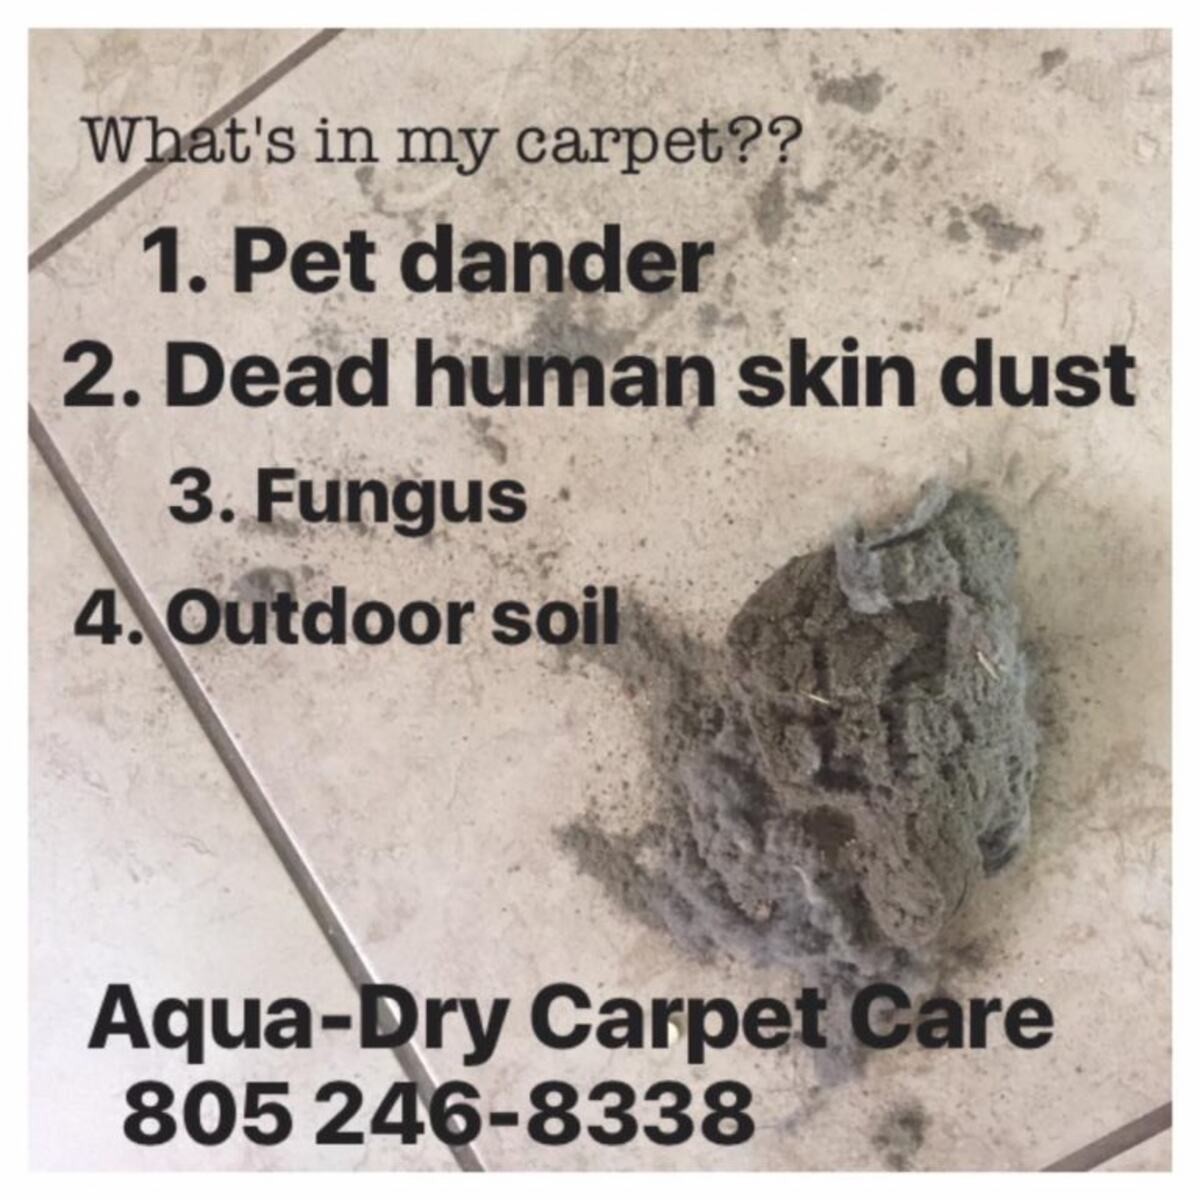 What's in my carpet?